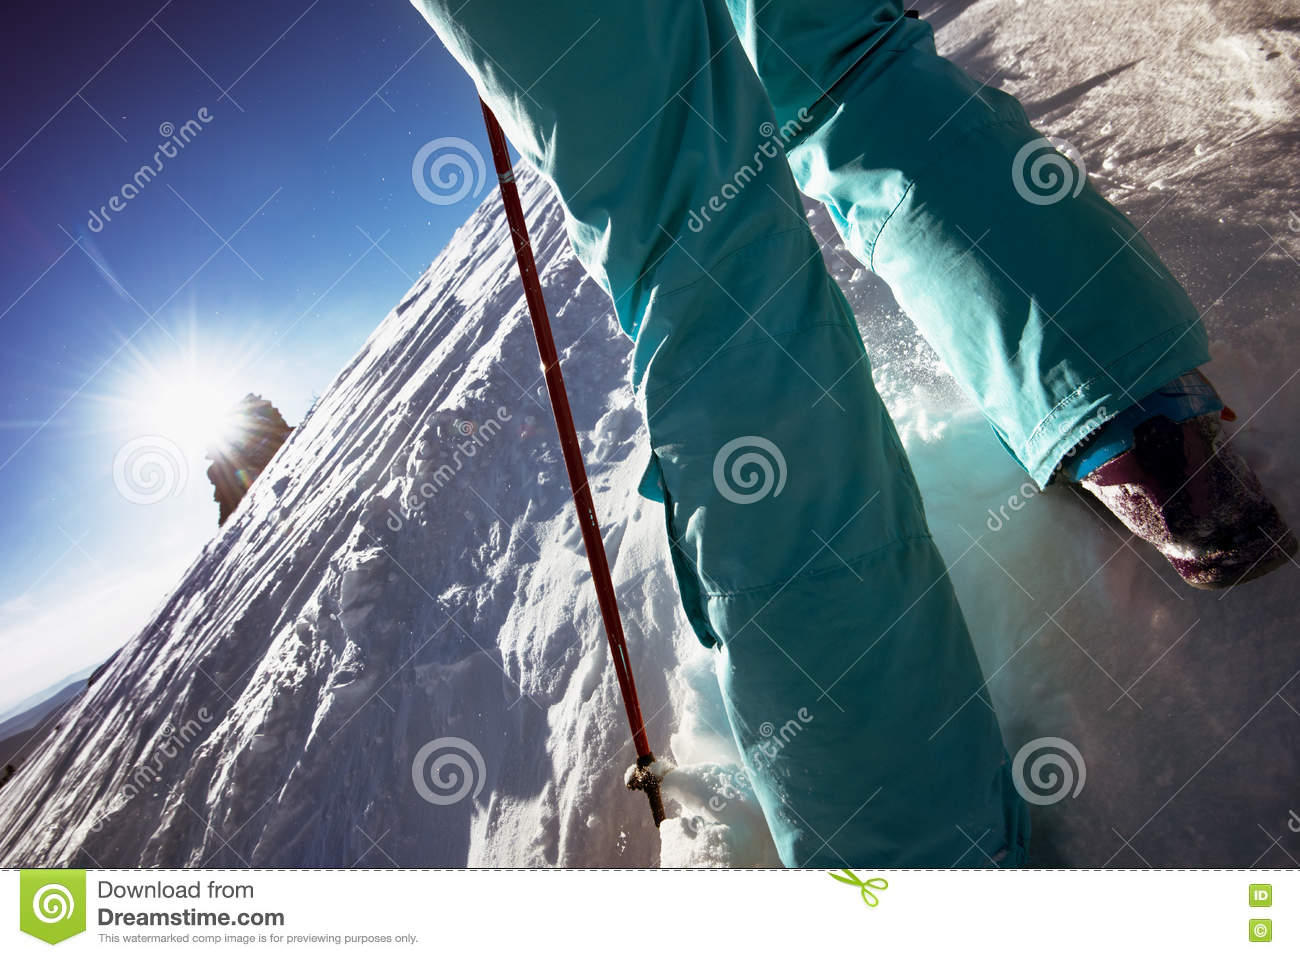 """mountains uphill """"skinning is one part aerobic hill workout, one part downhill skiing,"""" said ted mahon, an avid uphill skier and a 20-year veteran ski instructor with the aspen skiing company who teaches uphill touring """"it's more than just exercise you're climbing a mountain"""" he added that it can be """"meditative"""" with """"an."""